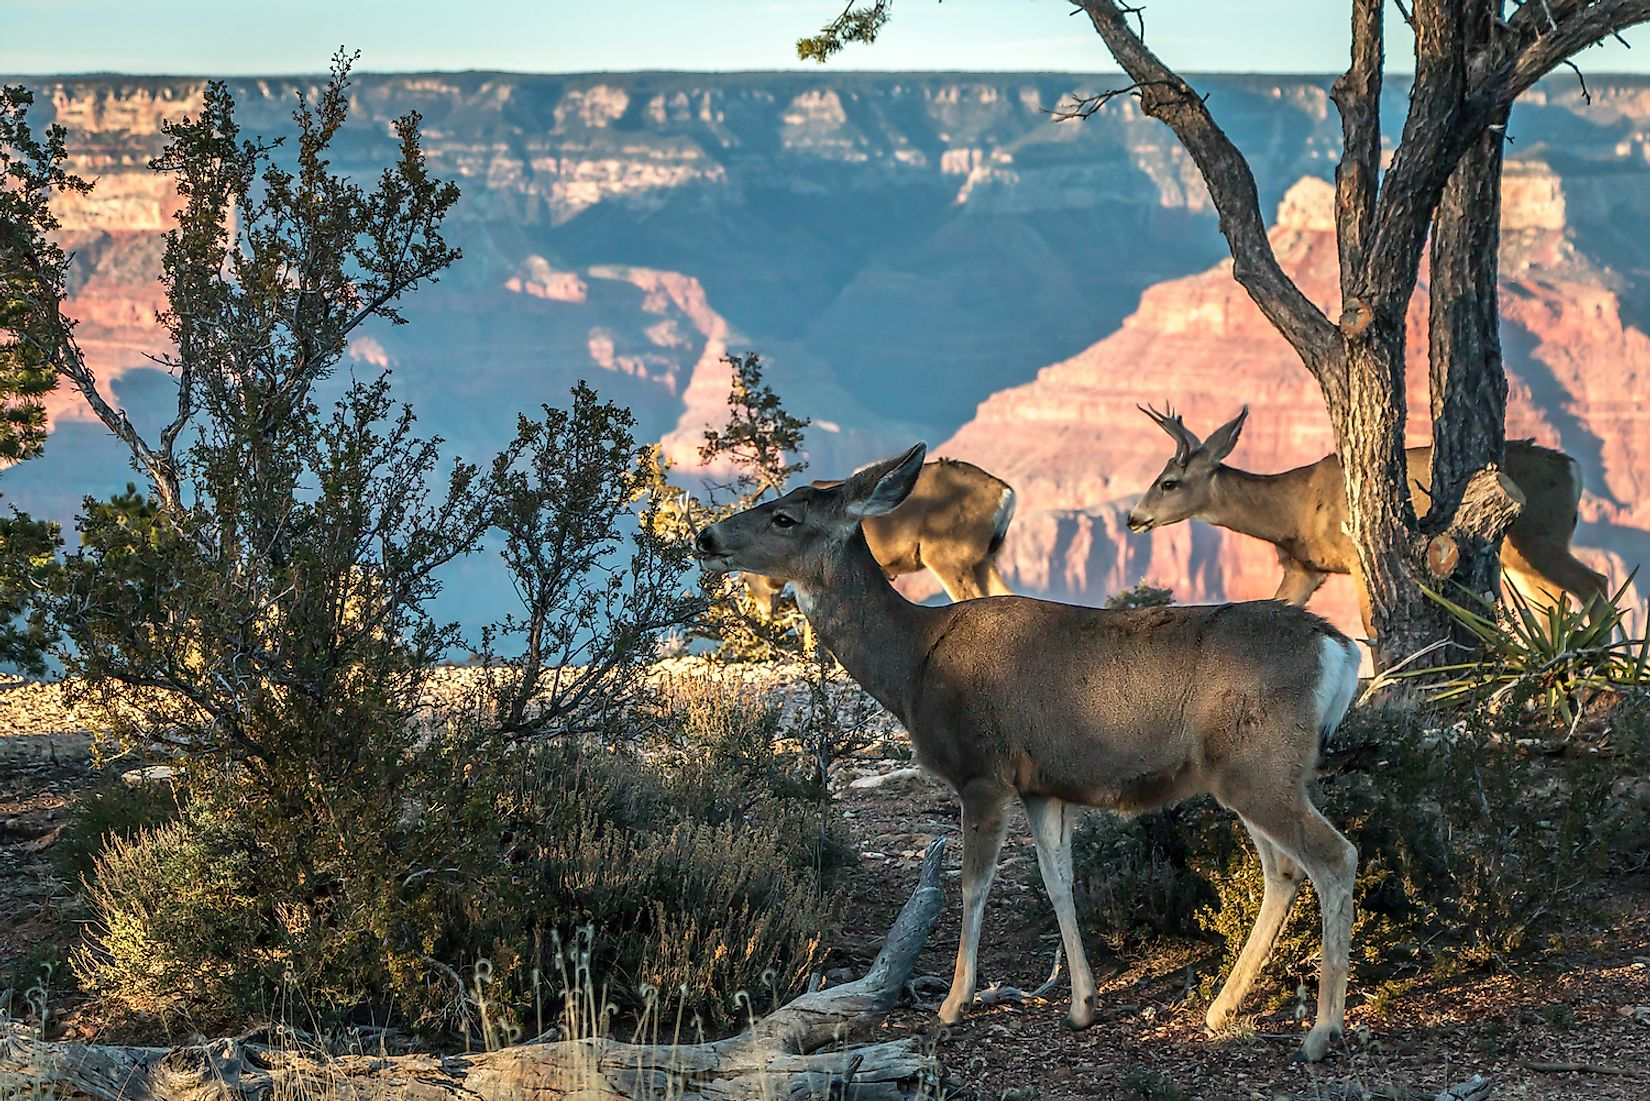 A herd of deer in the Grand Canyon National Park. Image credit: Mucky38/Shutterstock.com